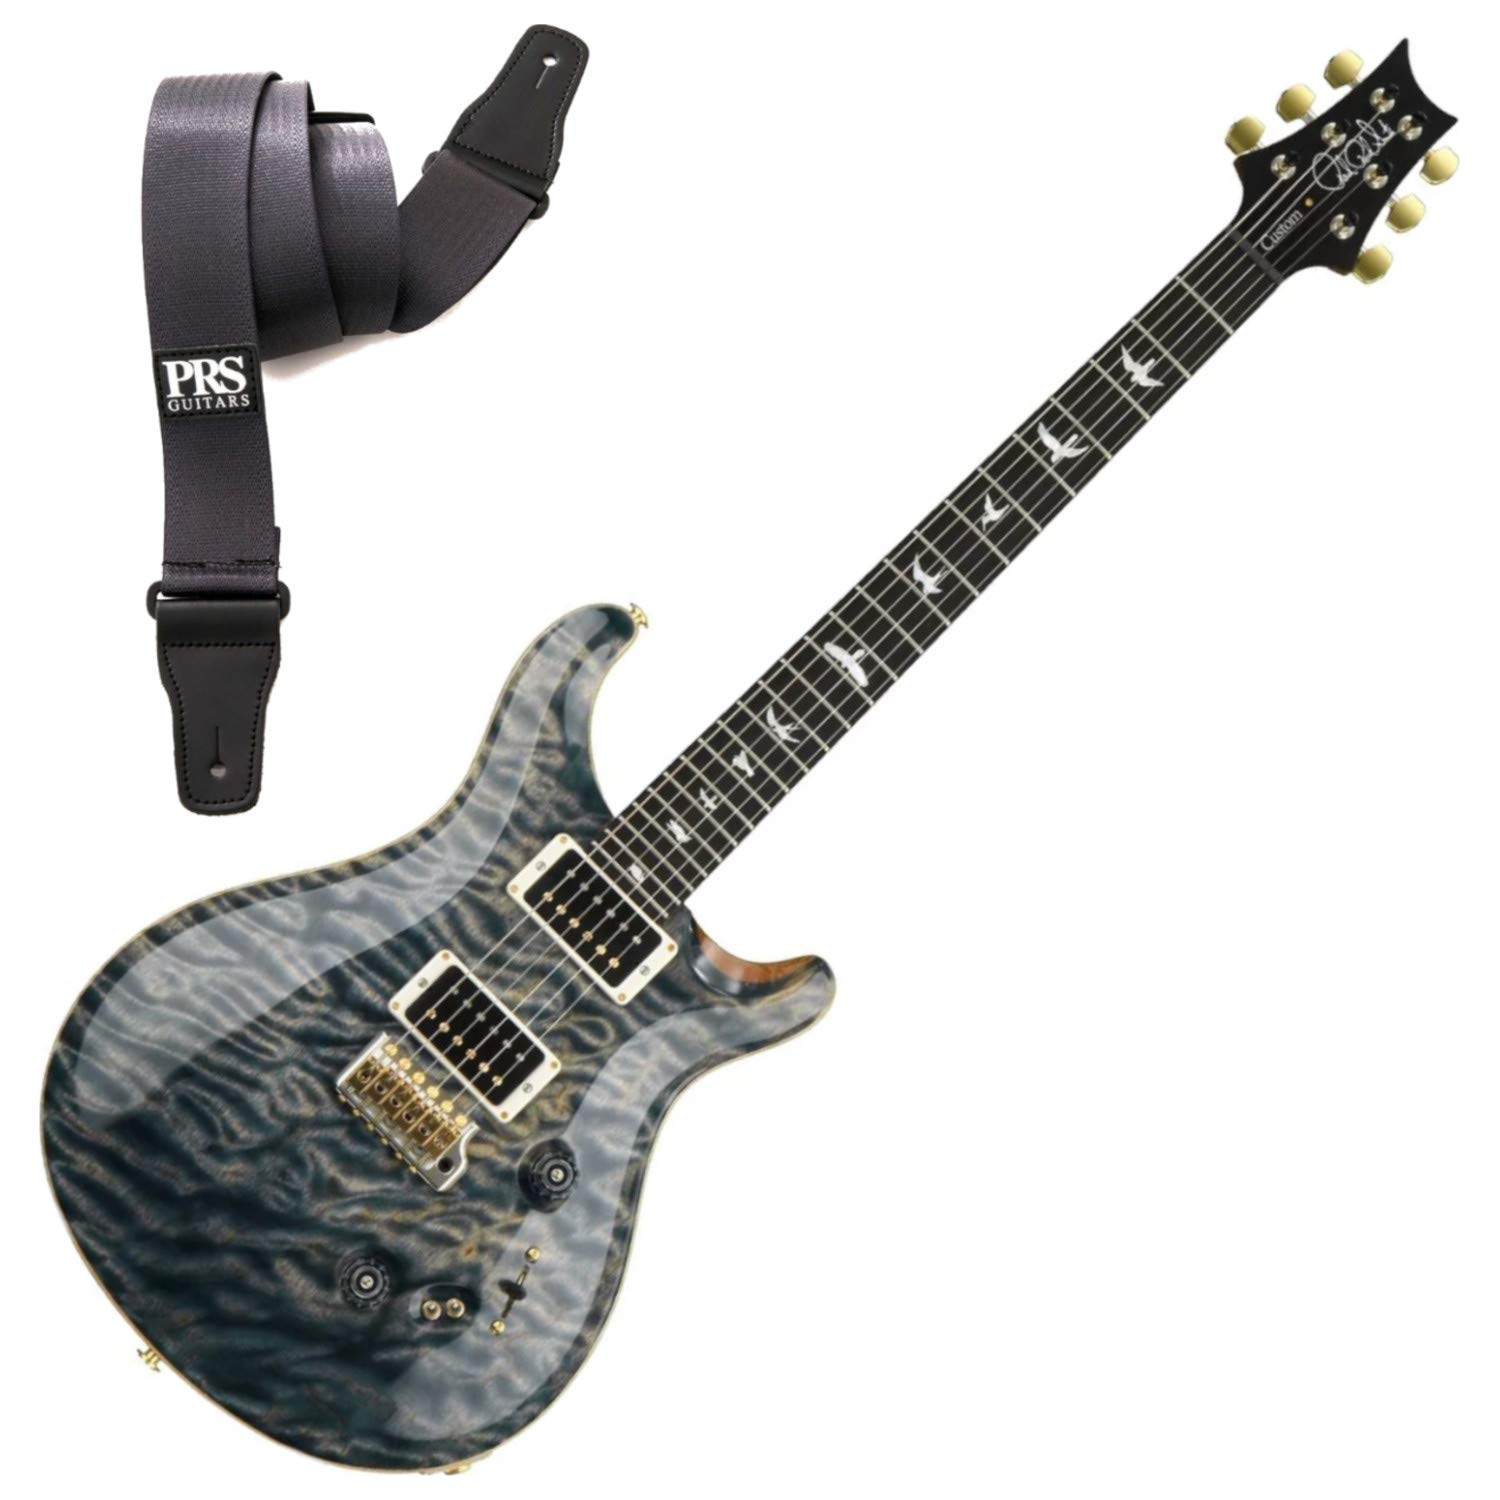 Cheap PRS CUSTOM 24-08 FADED WHALE BLUE 10 TOP Electric Guitar w/Strap Black Friday & Cyber Monday 2019